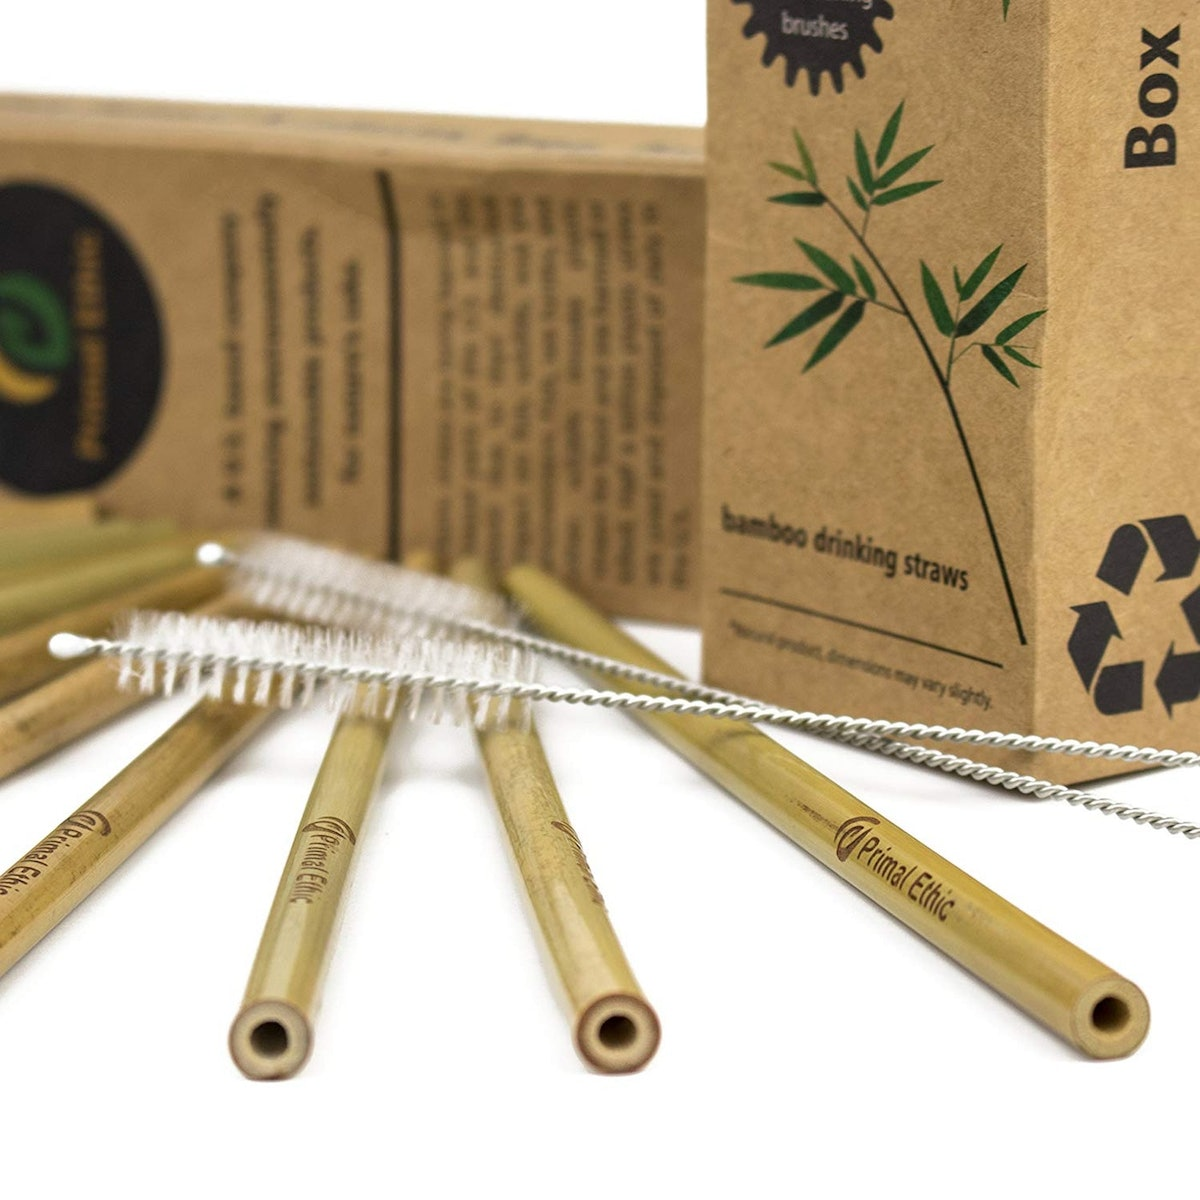 Reusable Bamboo Drinking Straws by Primal Ethic (12 Pack)